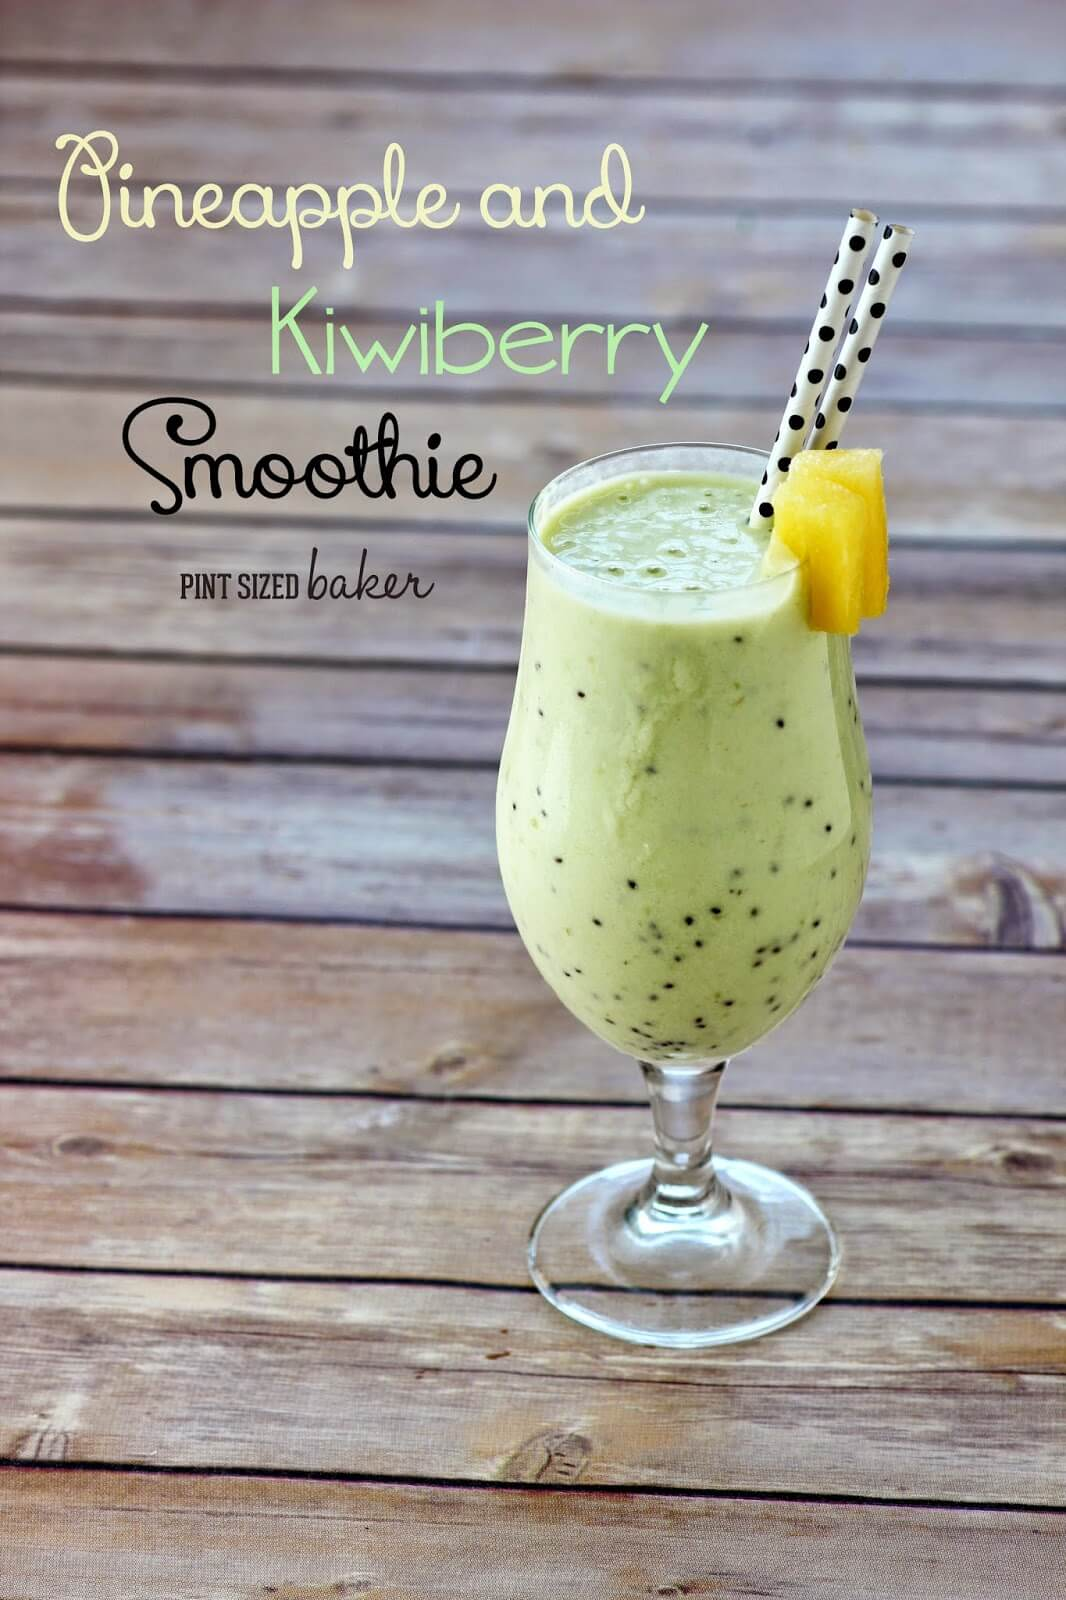 Make this Pineapple and Kiwiberry Protein Smoothie for a great summer breakfast. Look for Kiwiberries in a clam box at your local grocery store.